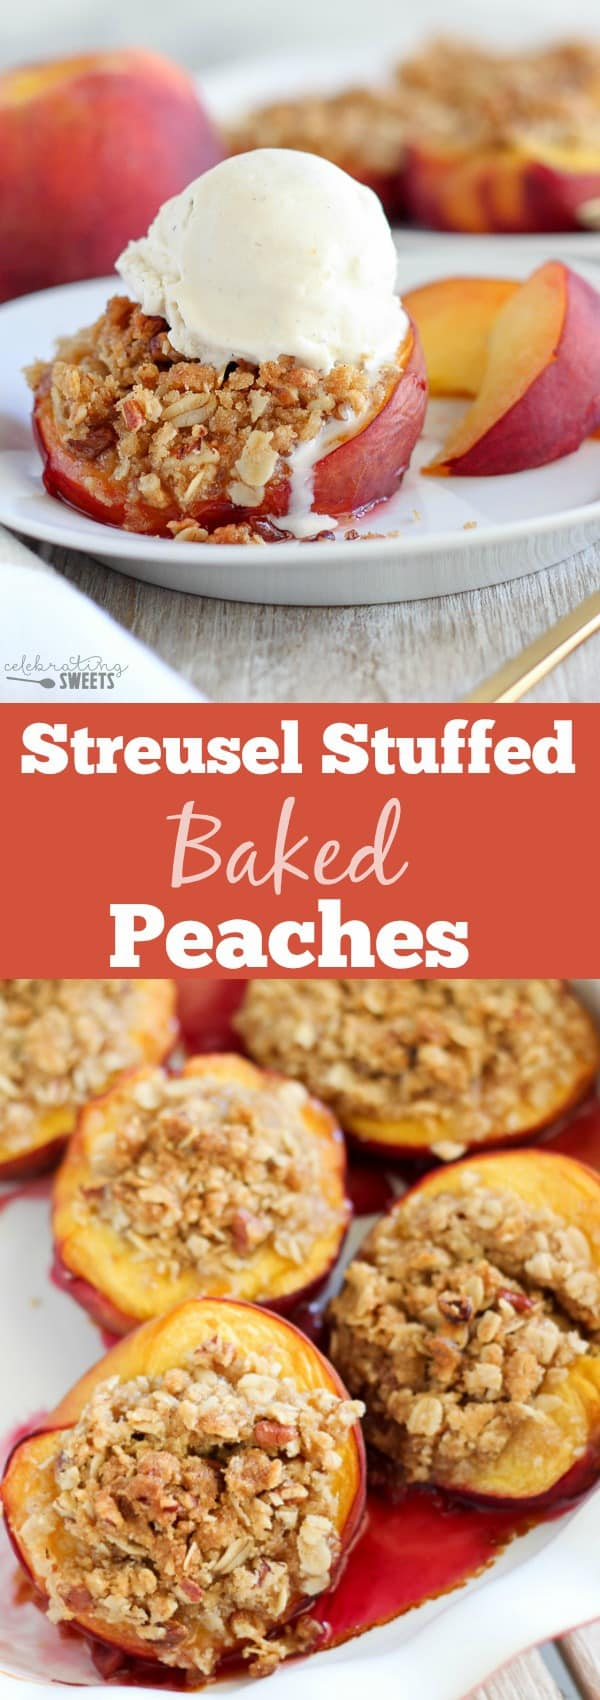 Streusel Stuffed Baked Peaches - Fresh peaches filled with a brown sugar cinnamon pecan streusel and baked until juicy and bubbly. Serve warm topped with vanilla ice cream!